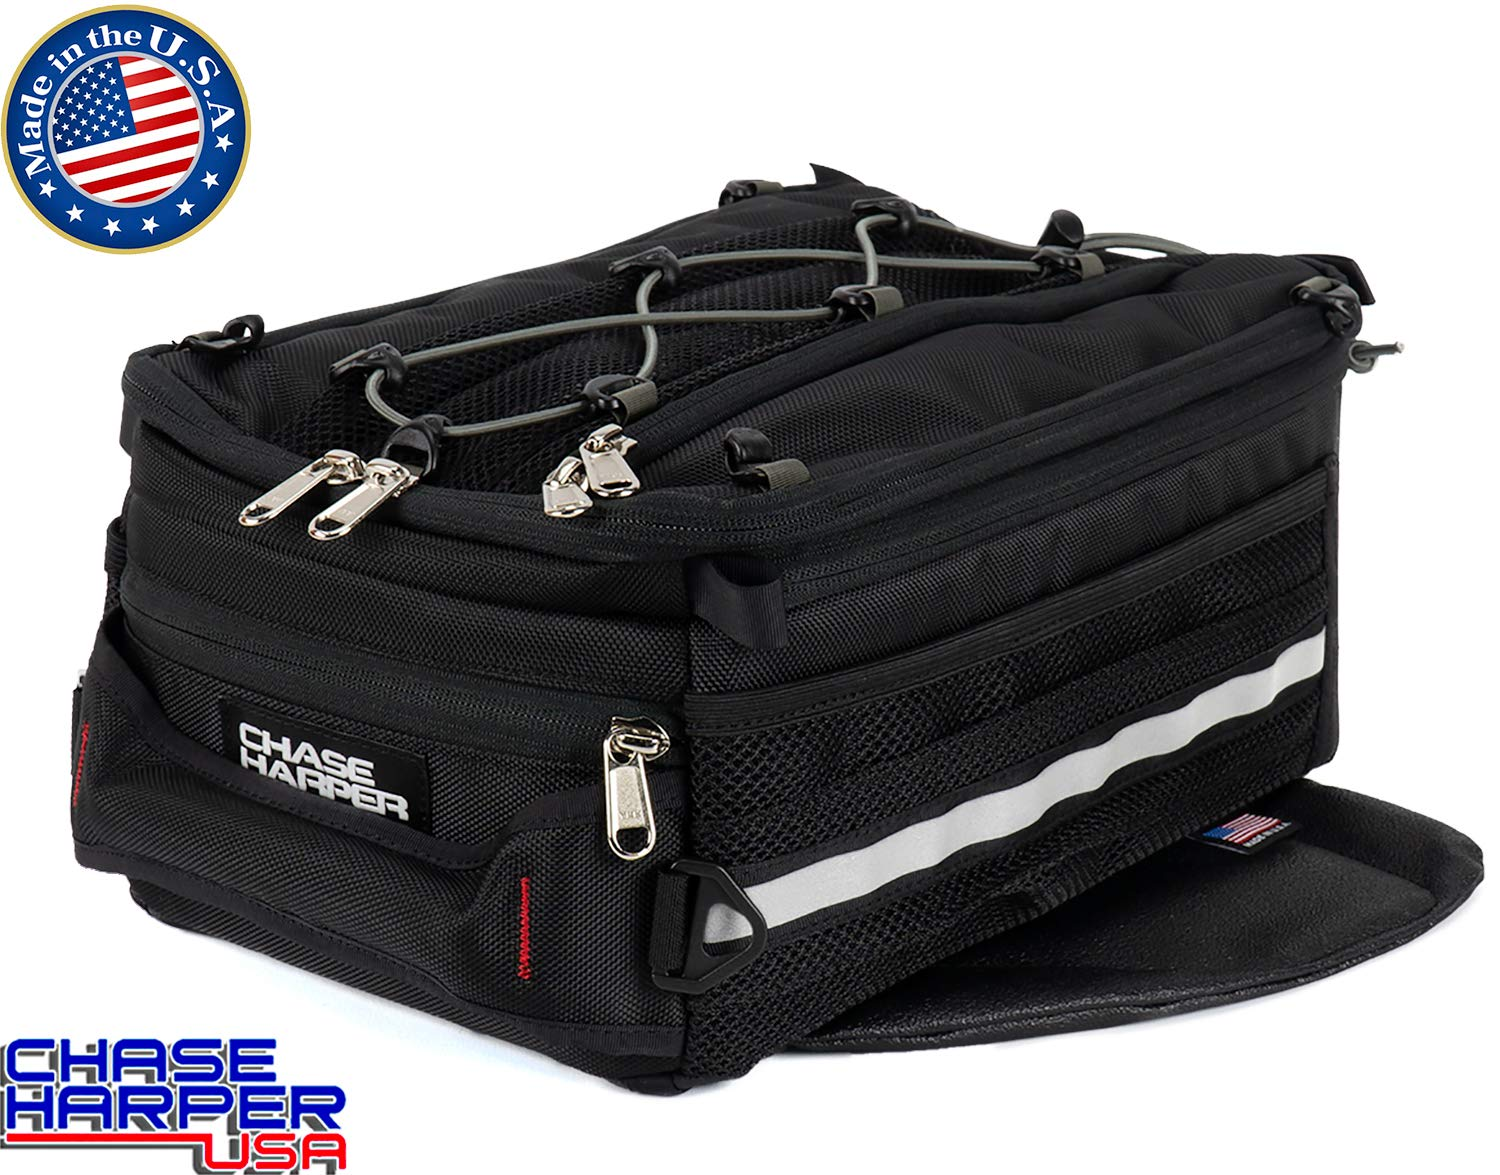 Chase Harper 800M Sport Trek Black Magnetic Tank Bag - 14.9 Liters by Chase Harper USA